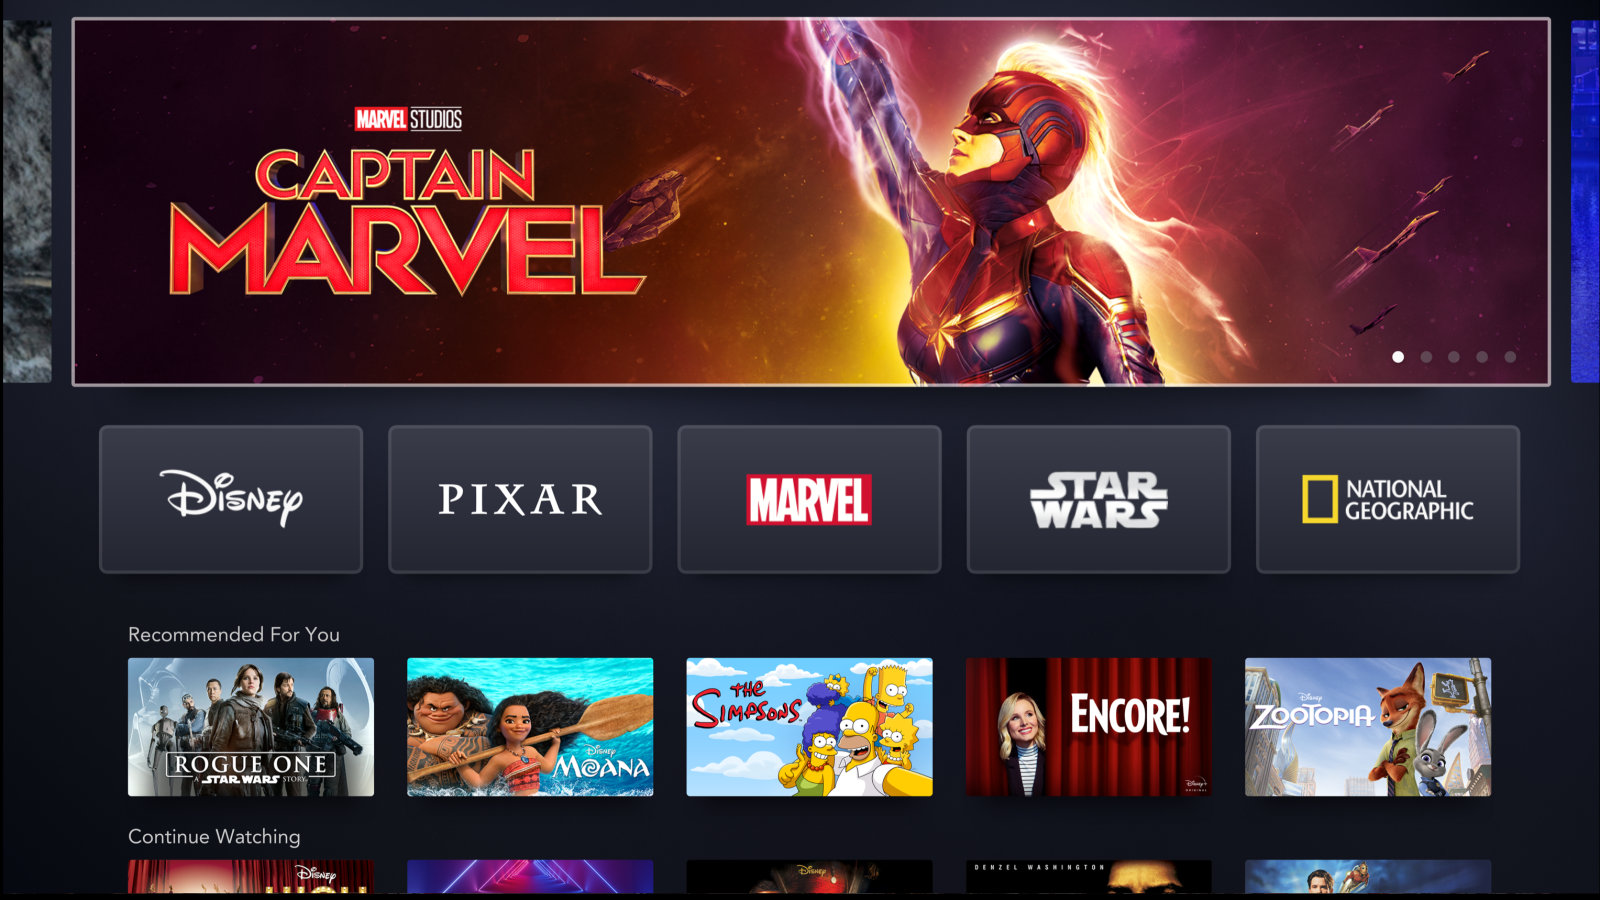 Disney+ interface